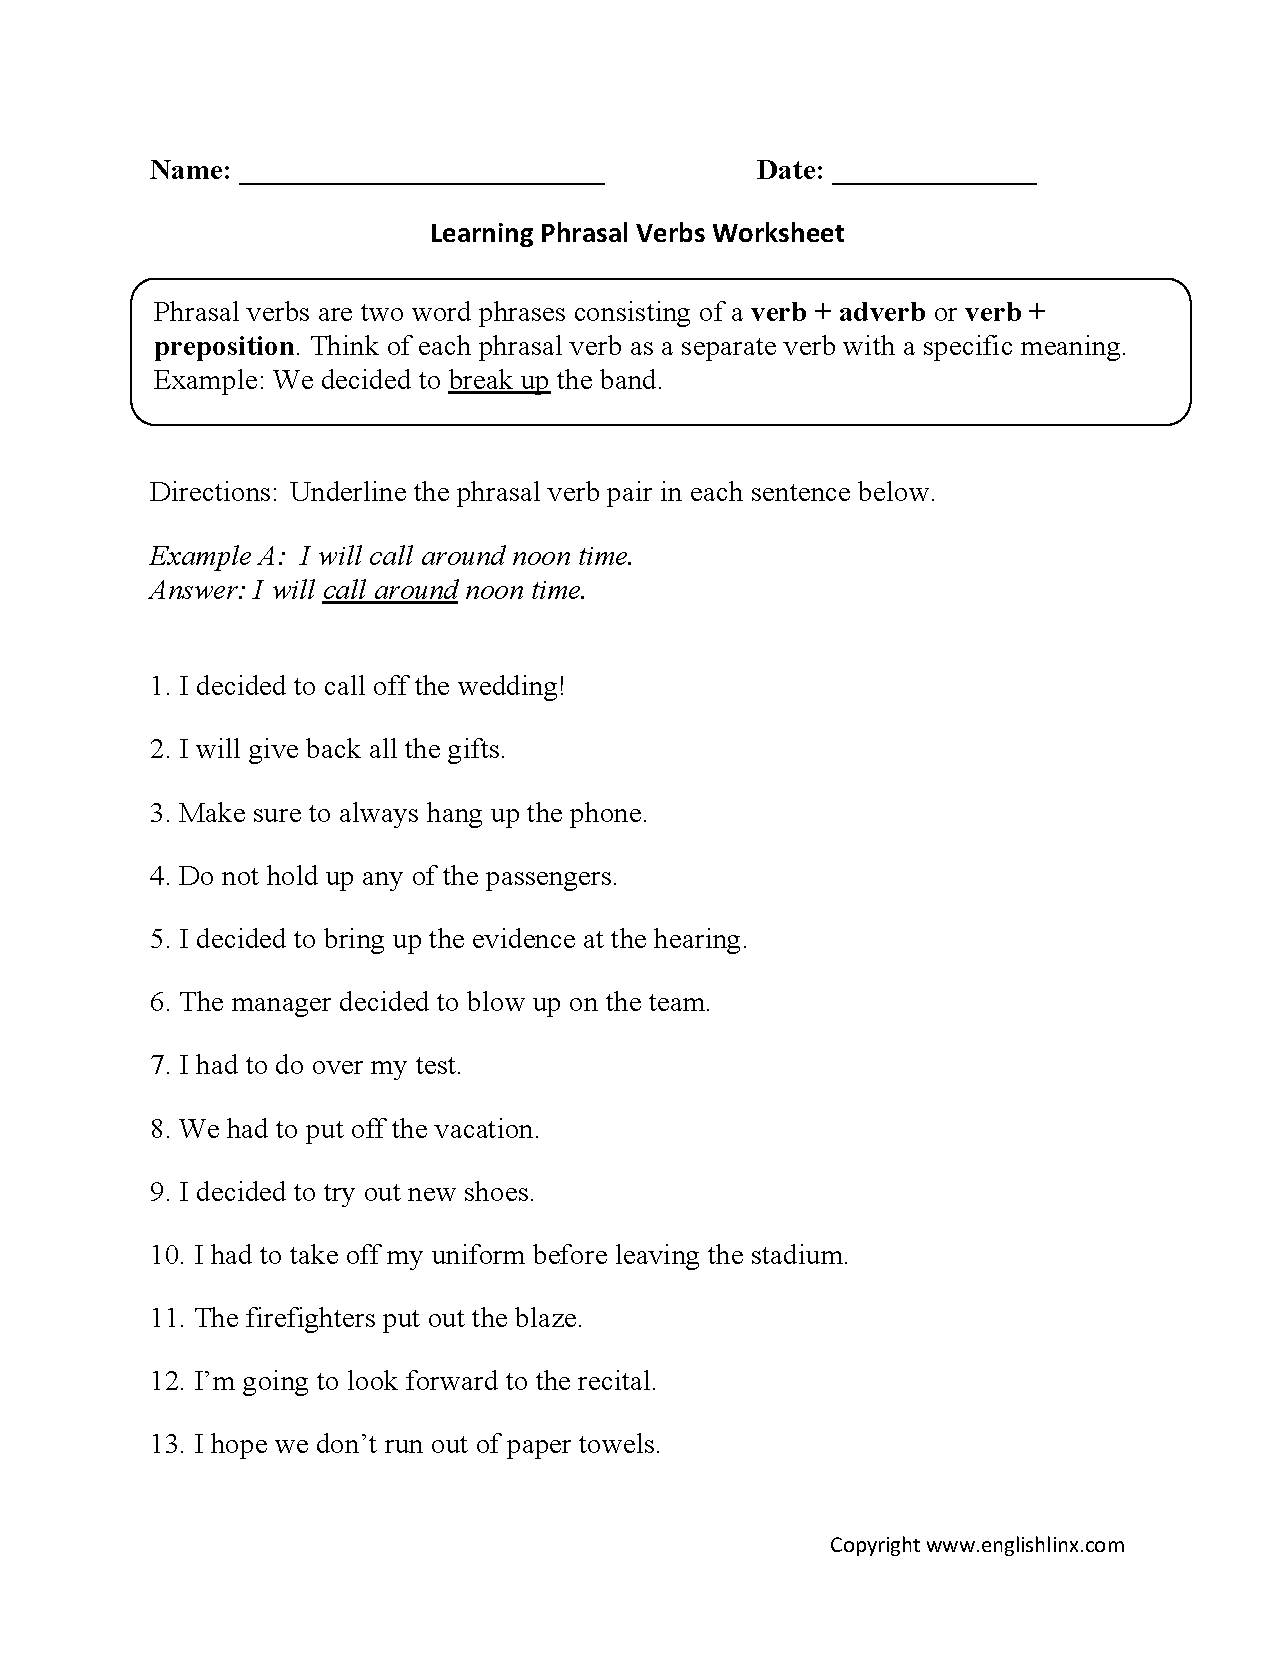 worksheet Noun Verb Worksheet englishlinx com verbs worksheets phrasal worksheets